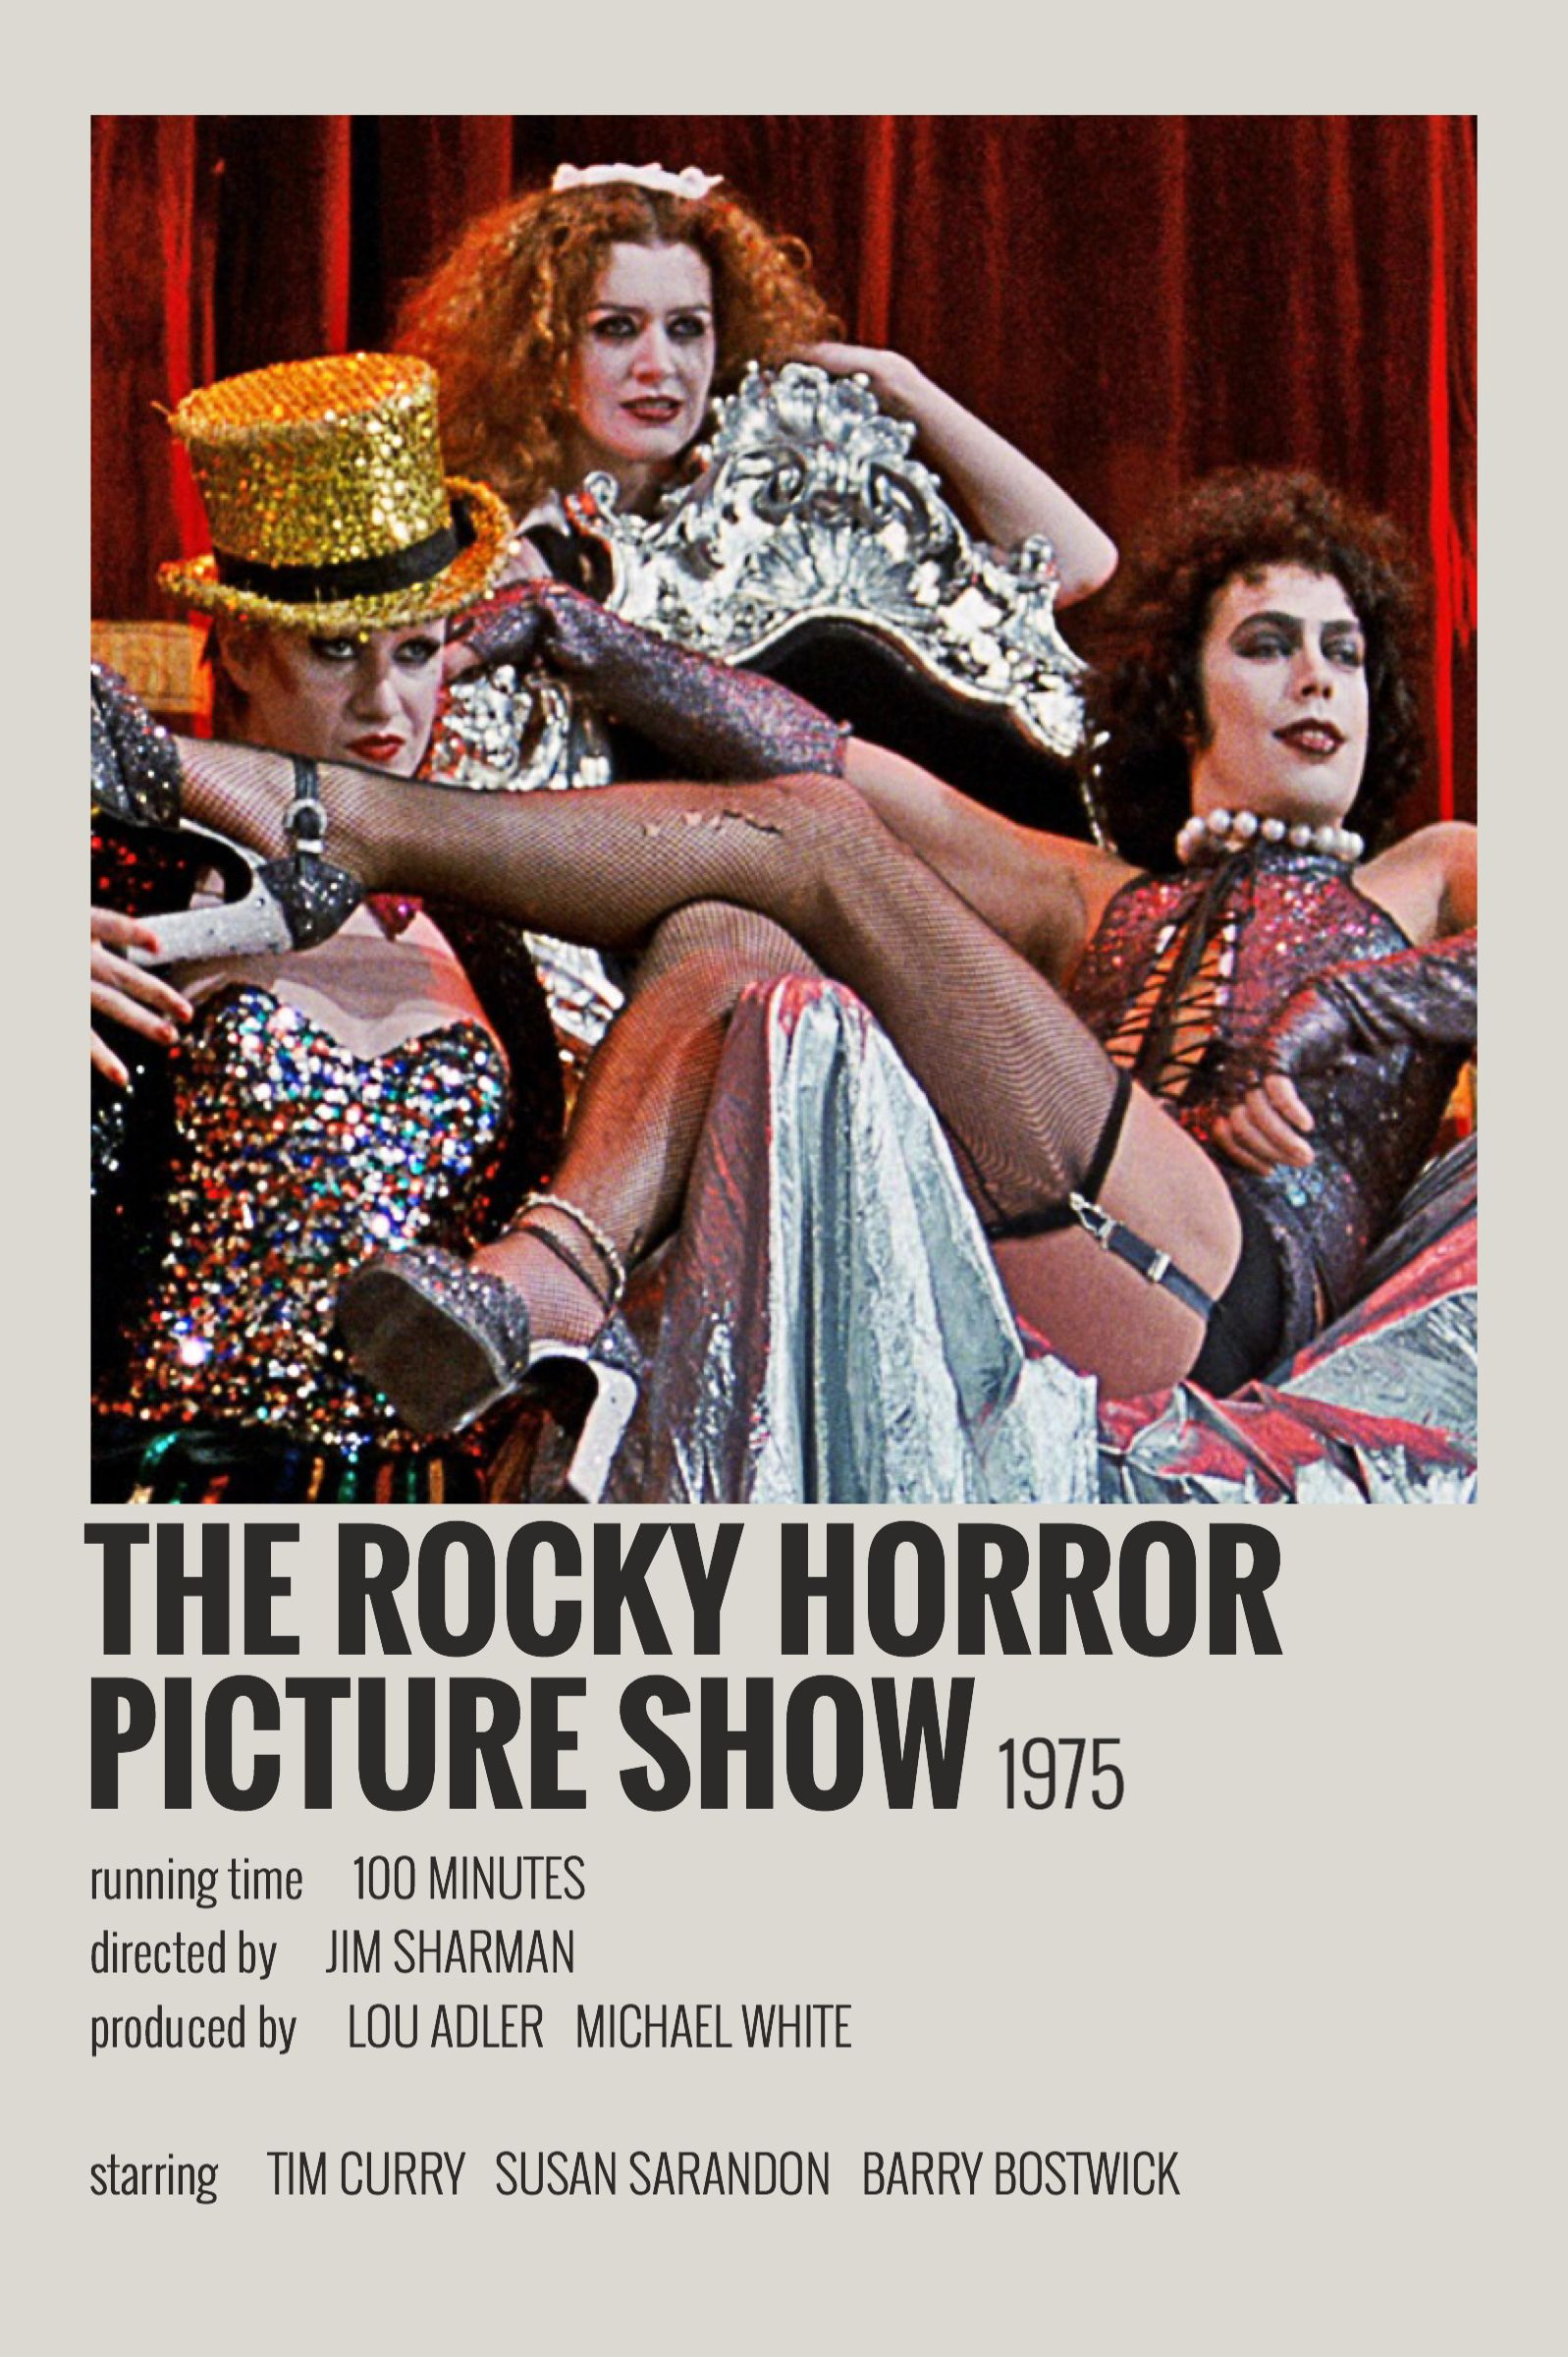 The Rocky Horror Picture Show By Maja In 2020 Iconic Movie Posters Film Posters Vintage Movie Poster Room